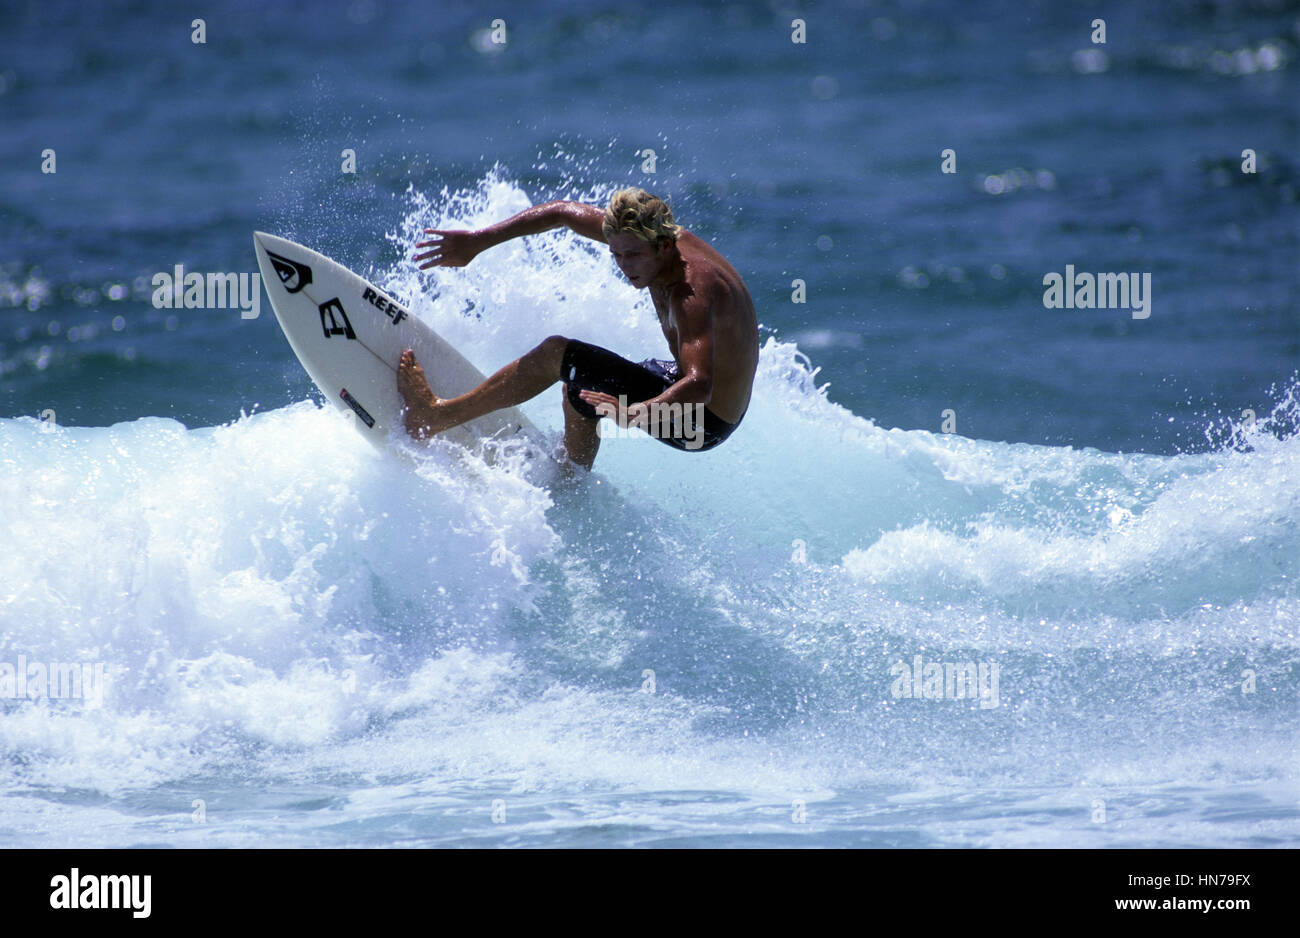 Surferturns off the top of the wave - Stock Image